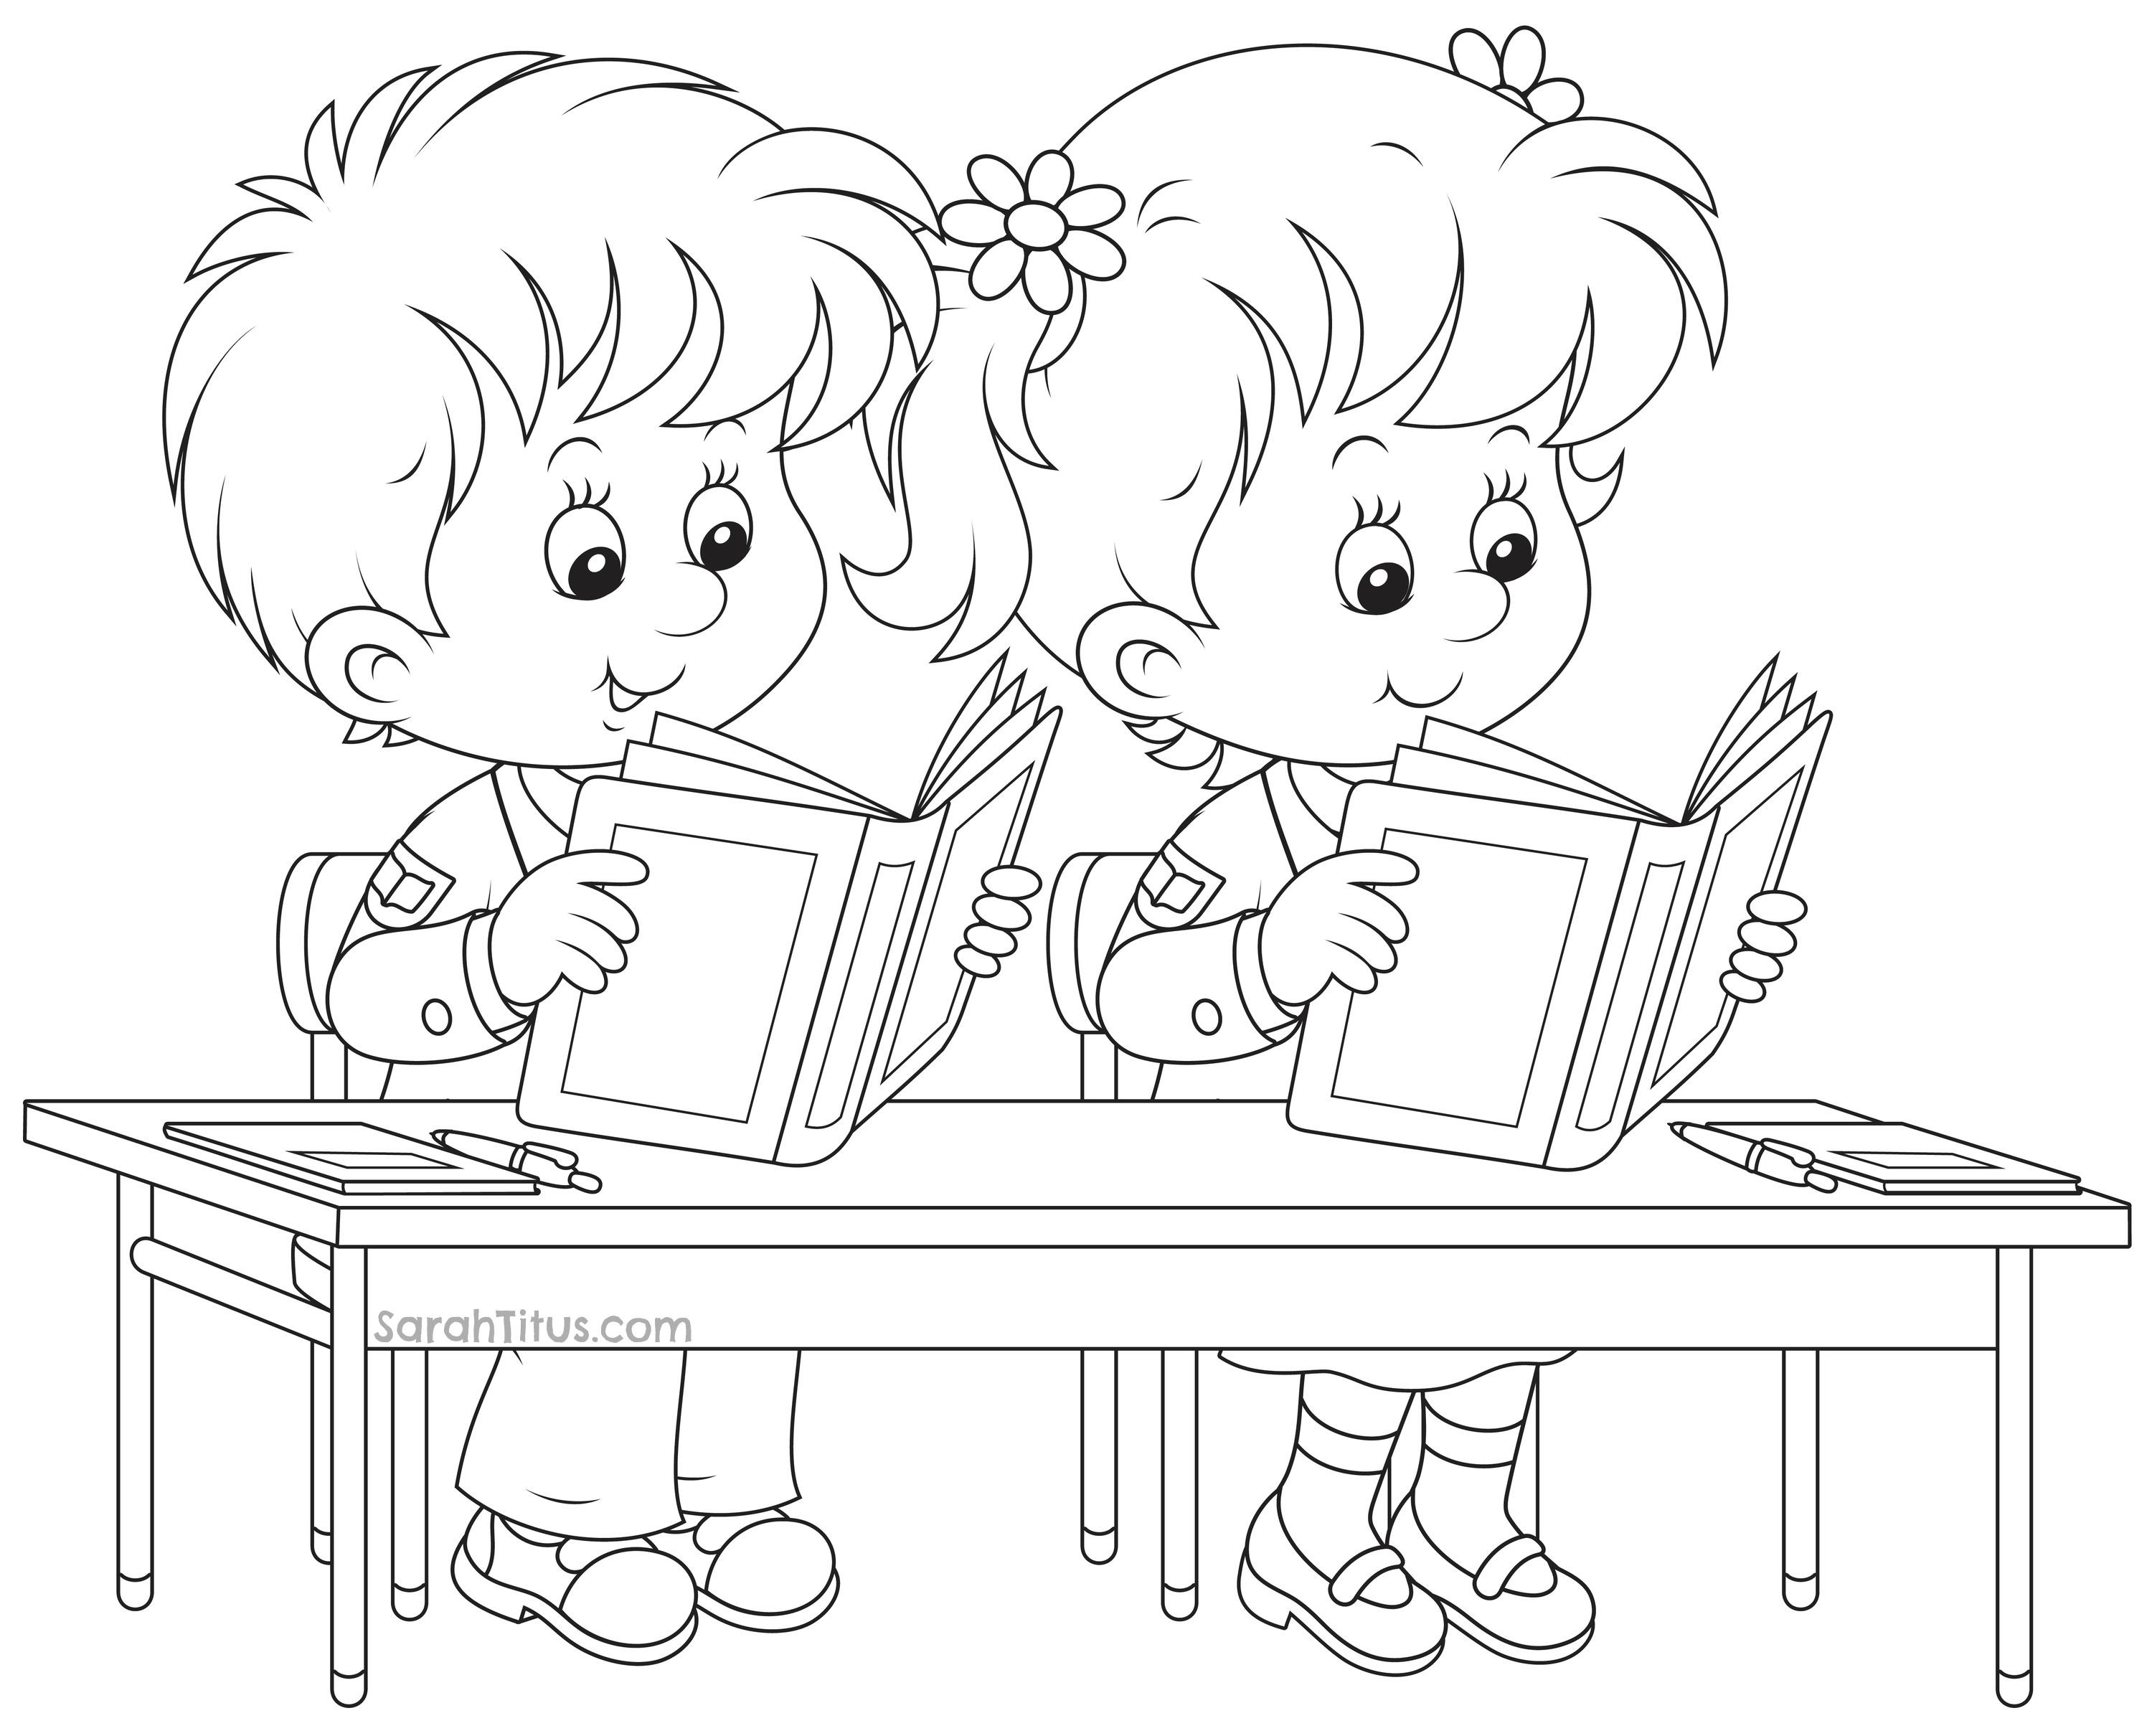 Fresh First Day School Coloring Sheets Free Printable Pages Kids Printable Of School Coloring Pages with 35 Coloring Page A School Small School Collection